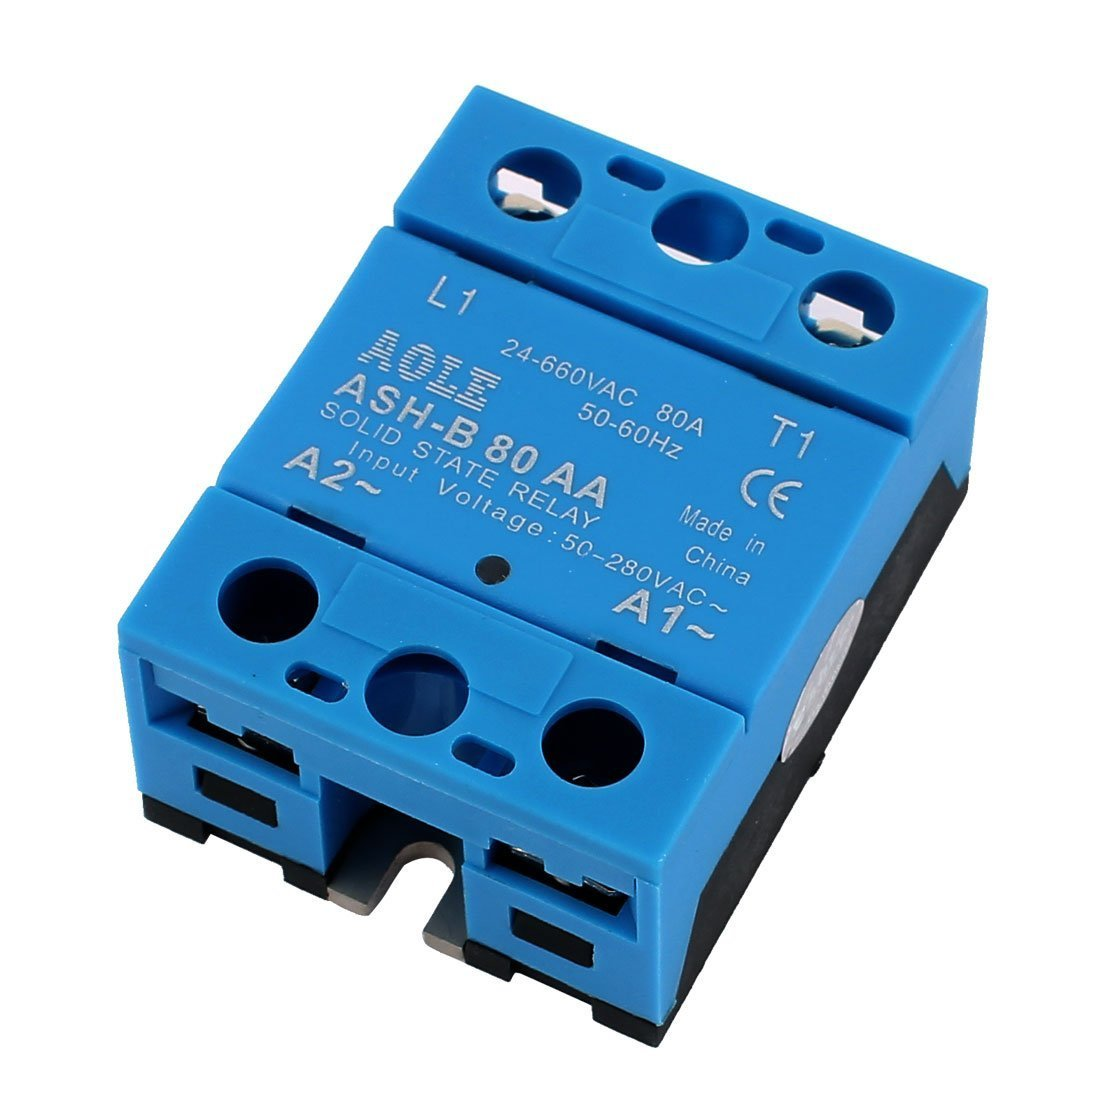 ASH-B80AA 24-660VAC to 480VAC 80A Single Phase Solid State AC to AC Relay a16081800ux0815